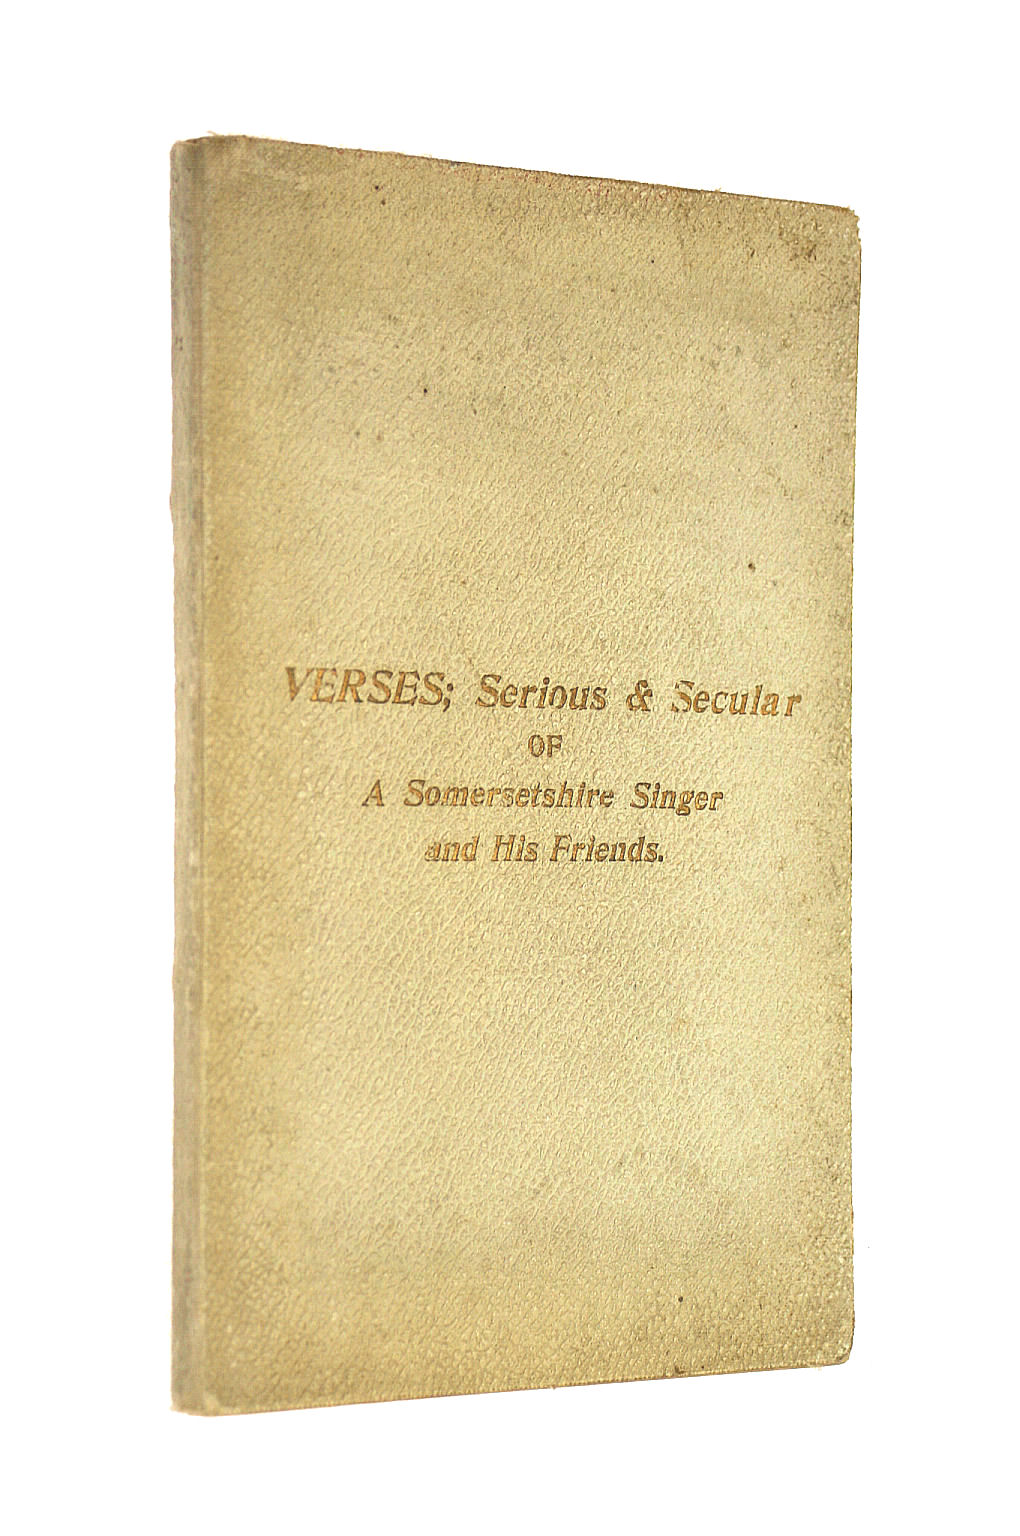 Image for Verses, serious, caustic & descriptive, of a Somersetshire singer i.e. George F. Cooke and his friends